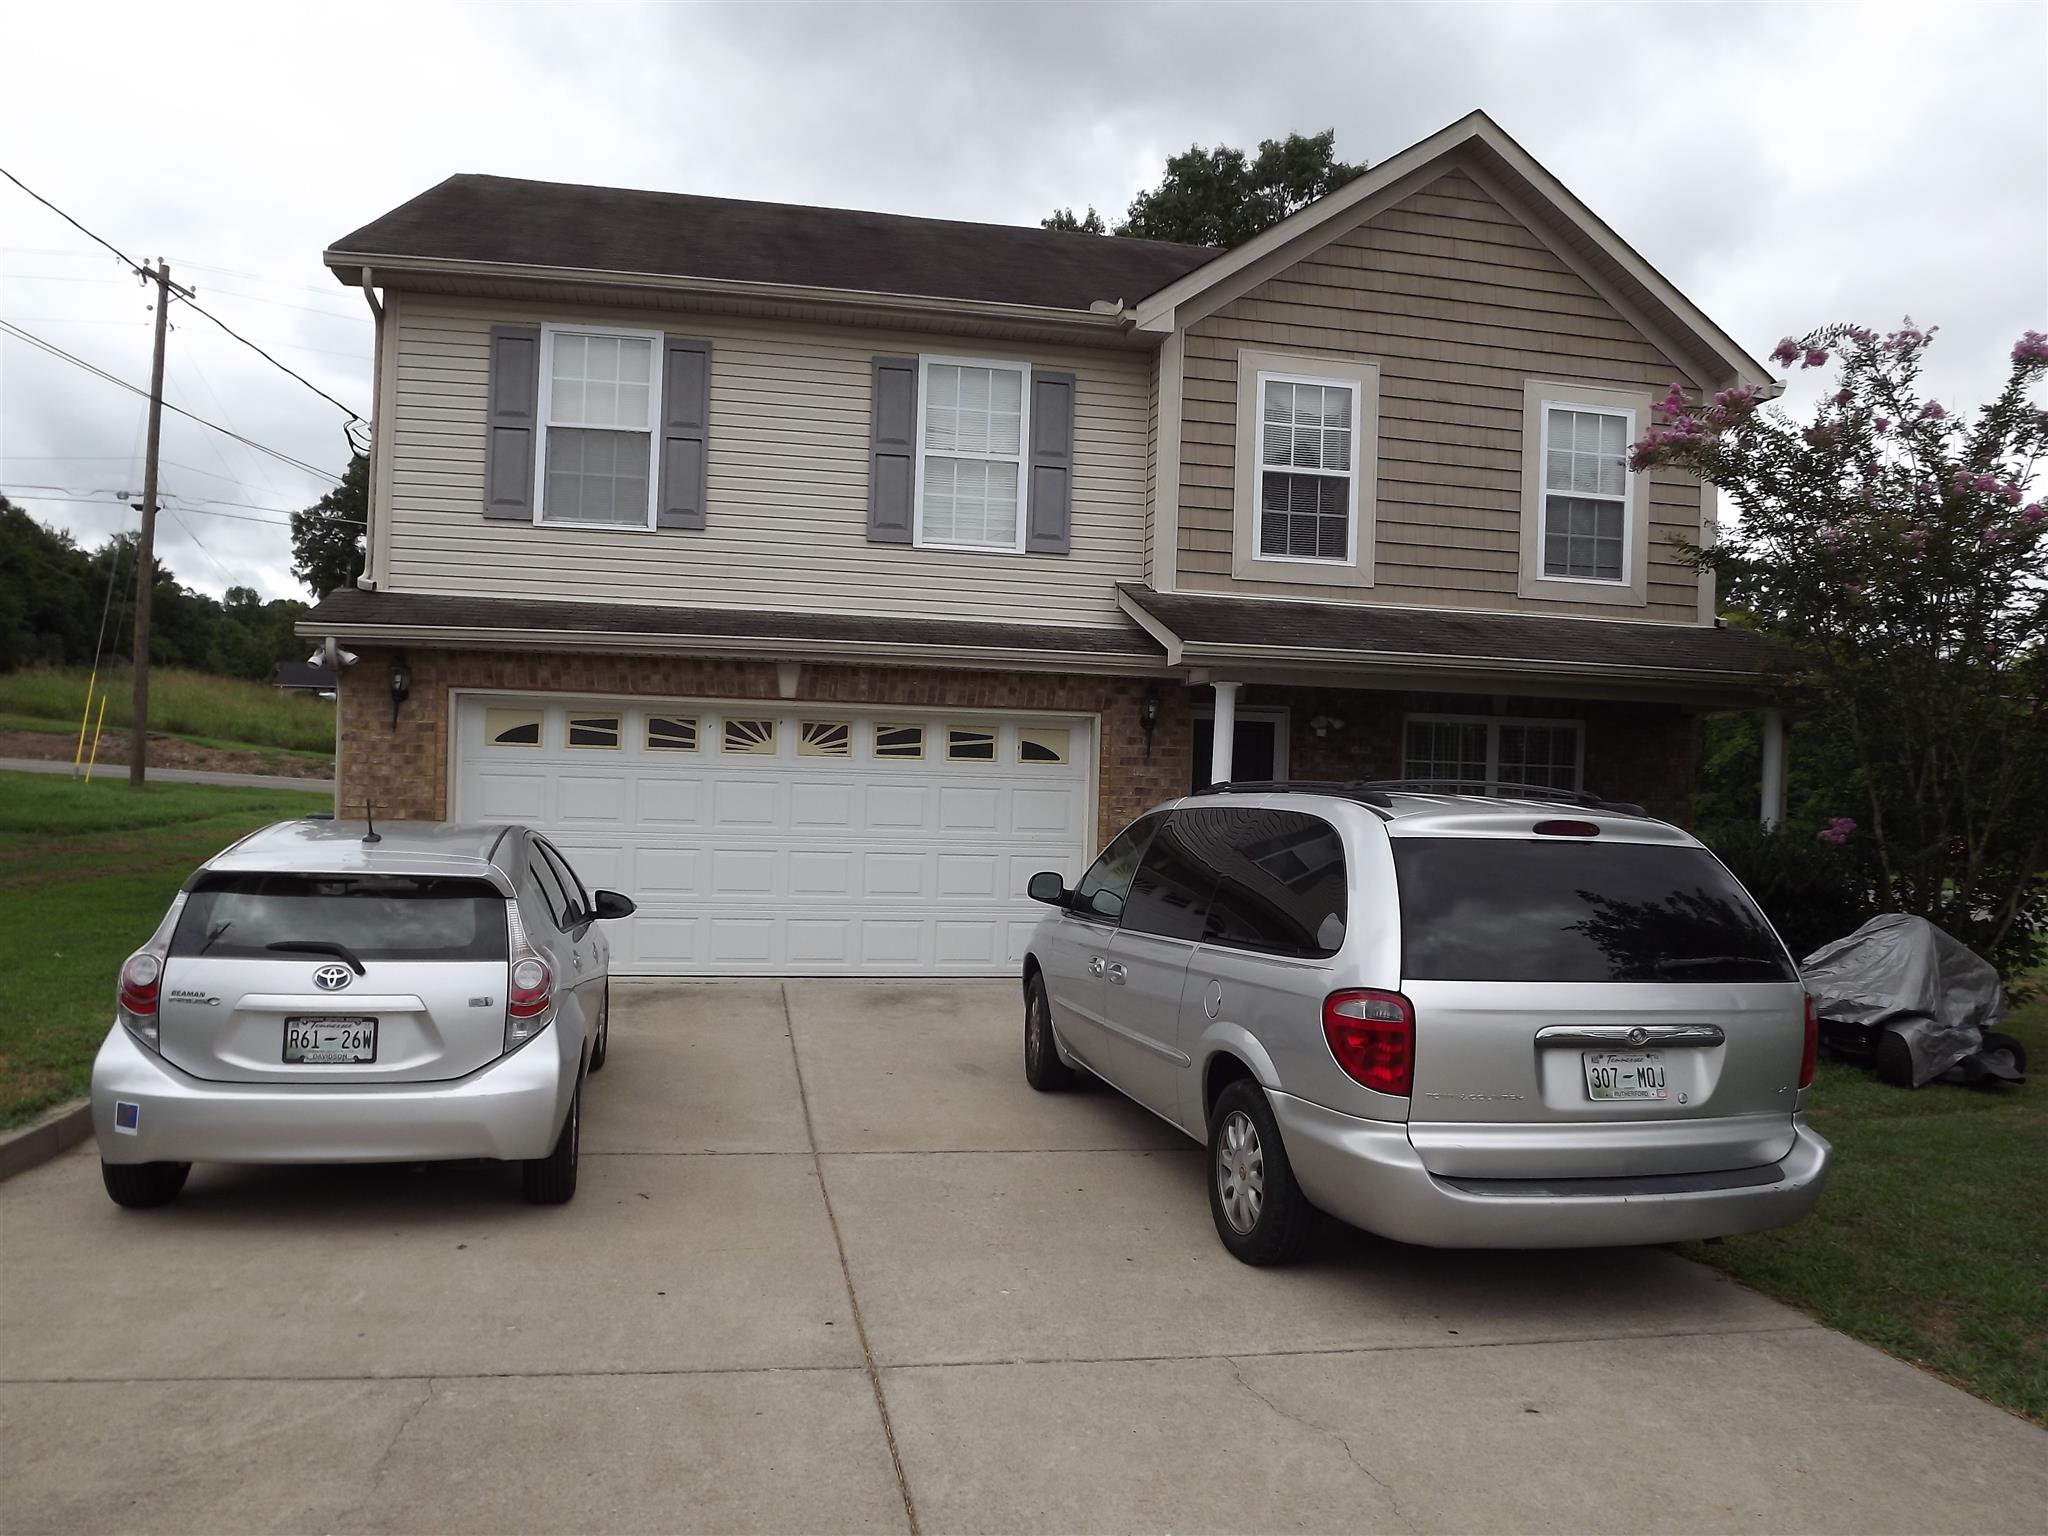 100 Washer Dr, La Vergne, TN 37086